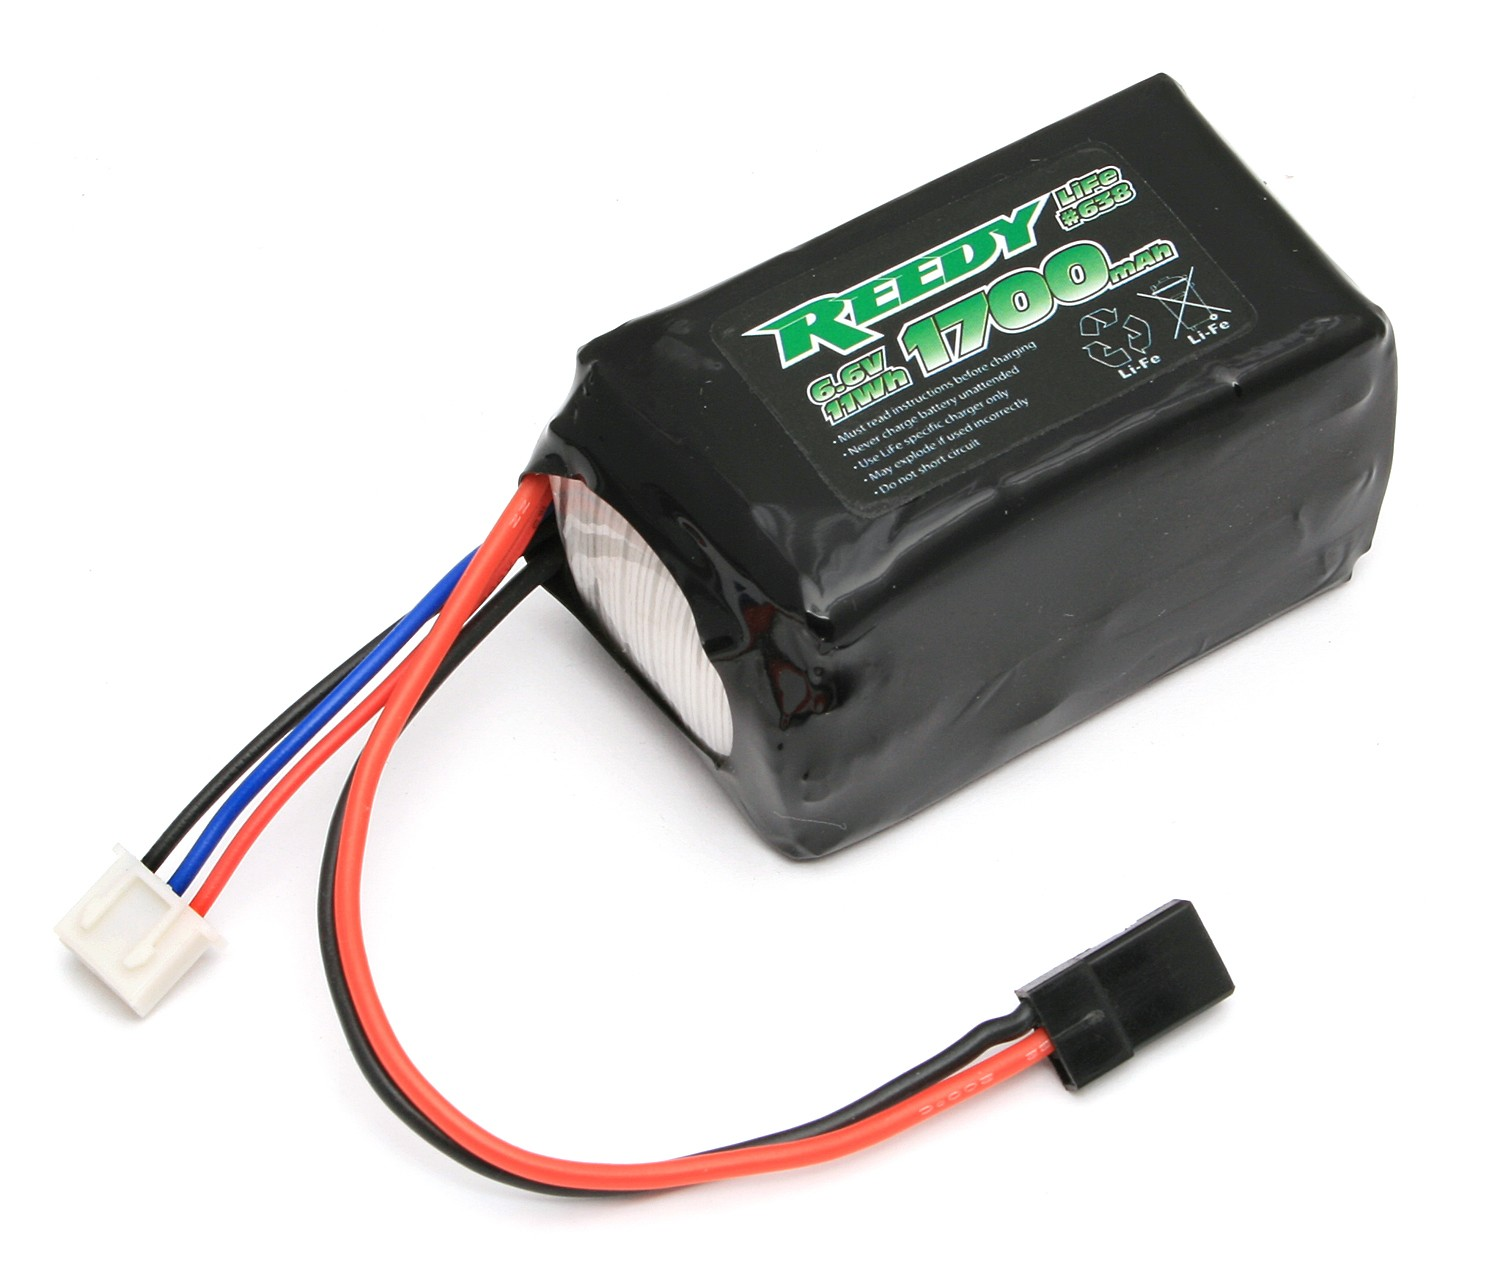 Reedy 1700mAh 6.6V Life Rx Battery